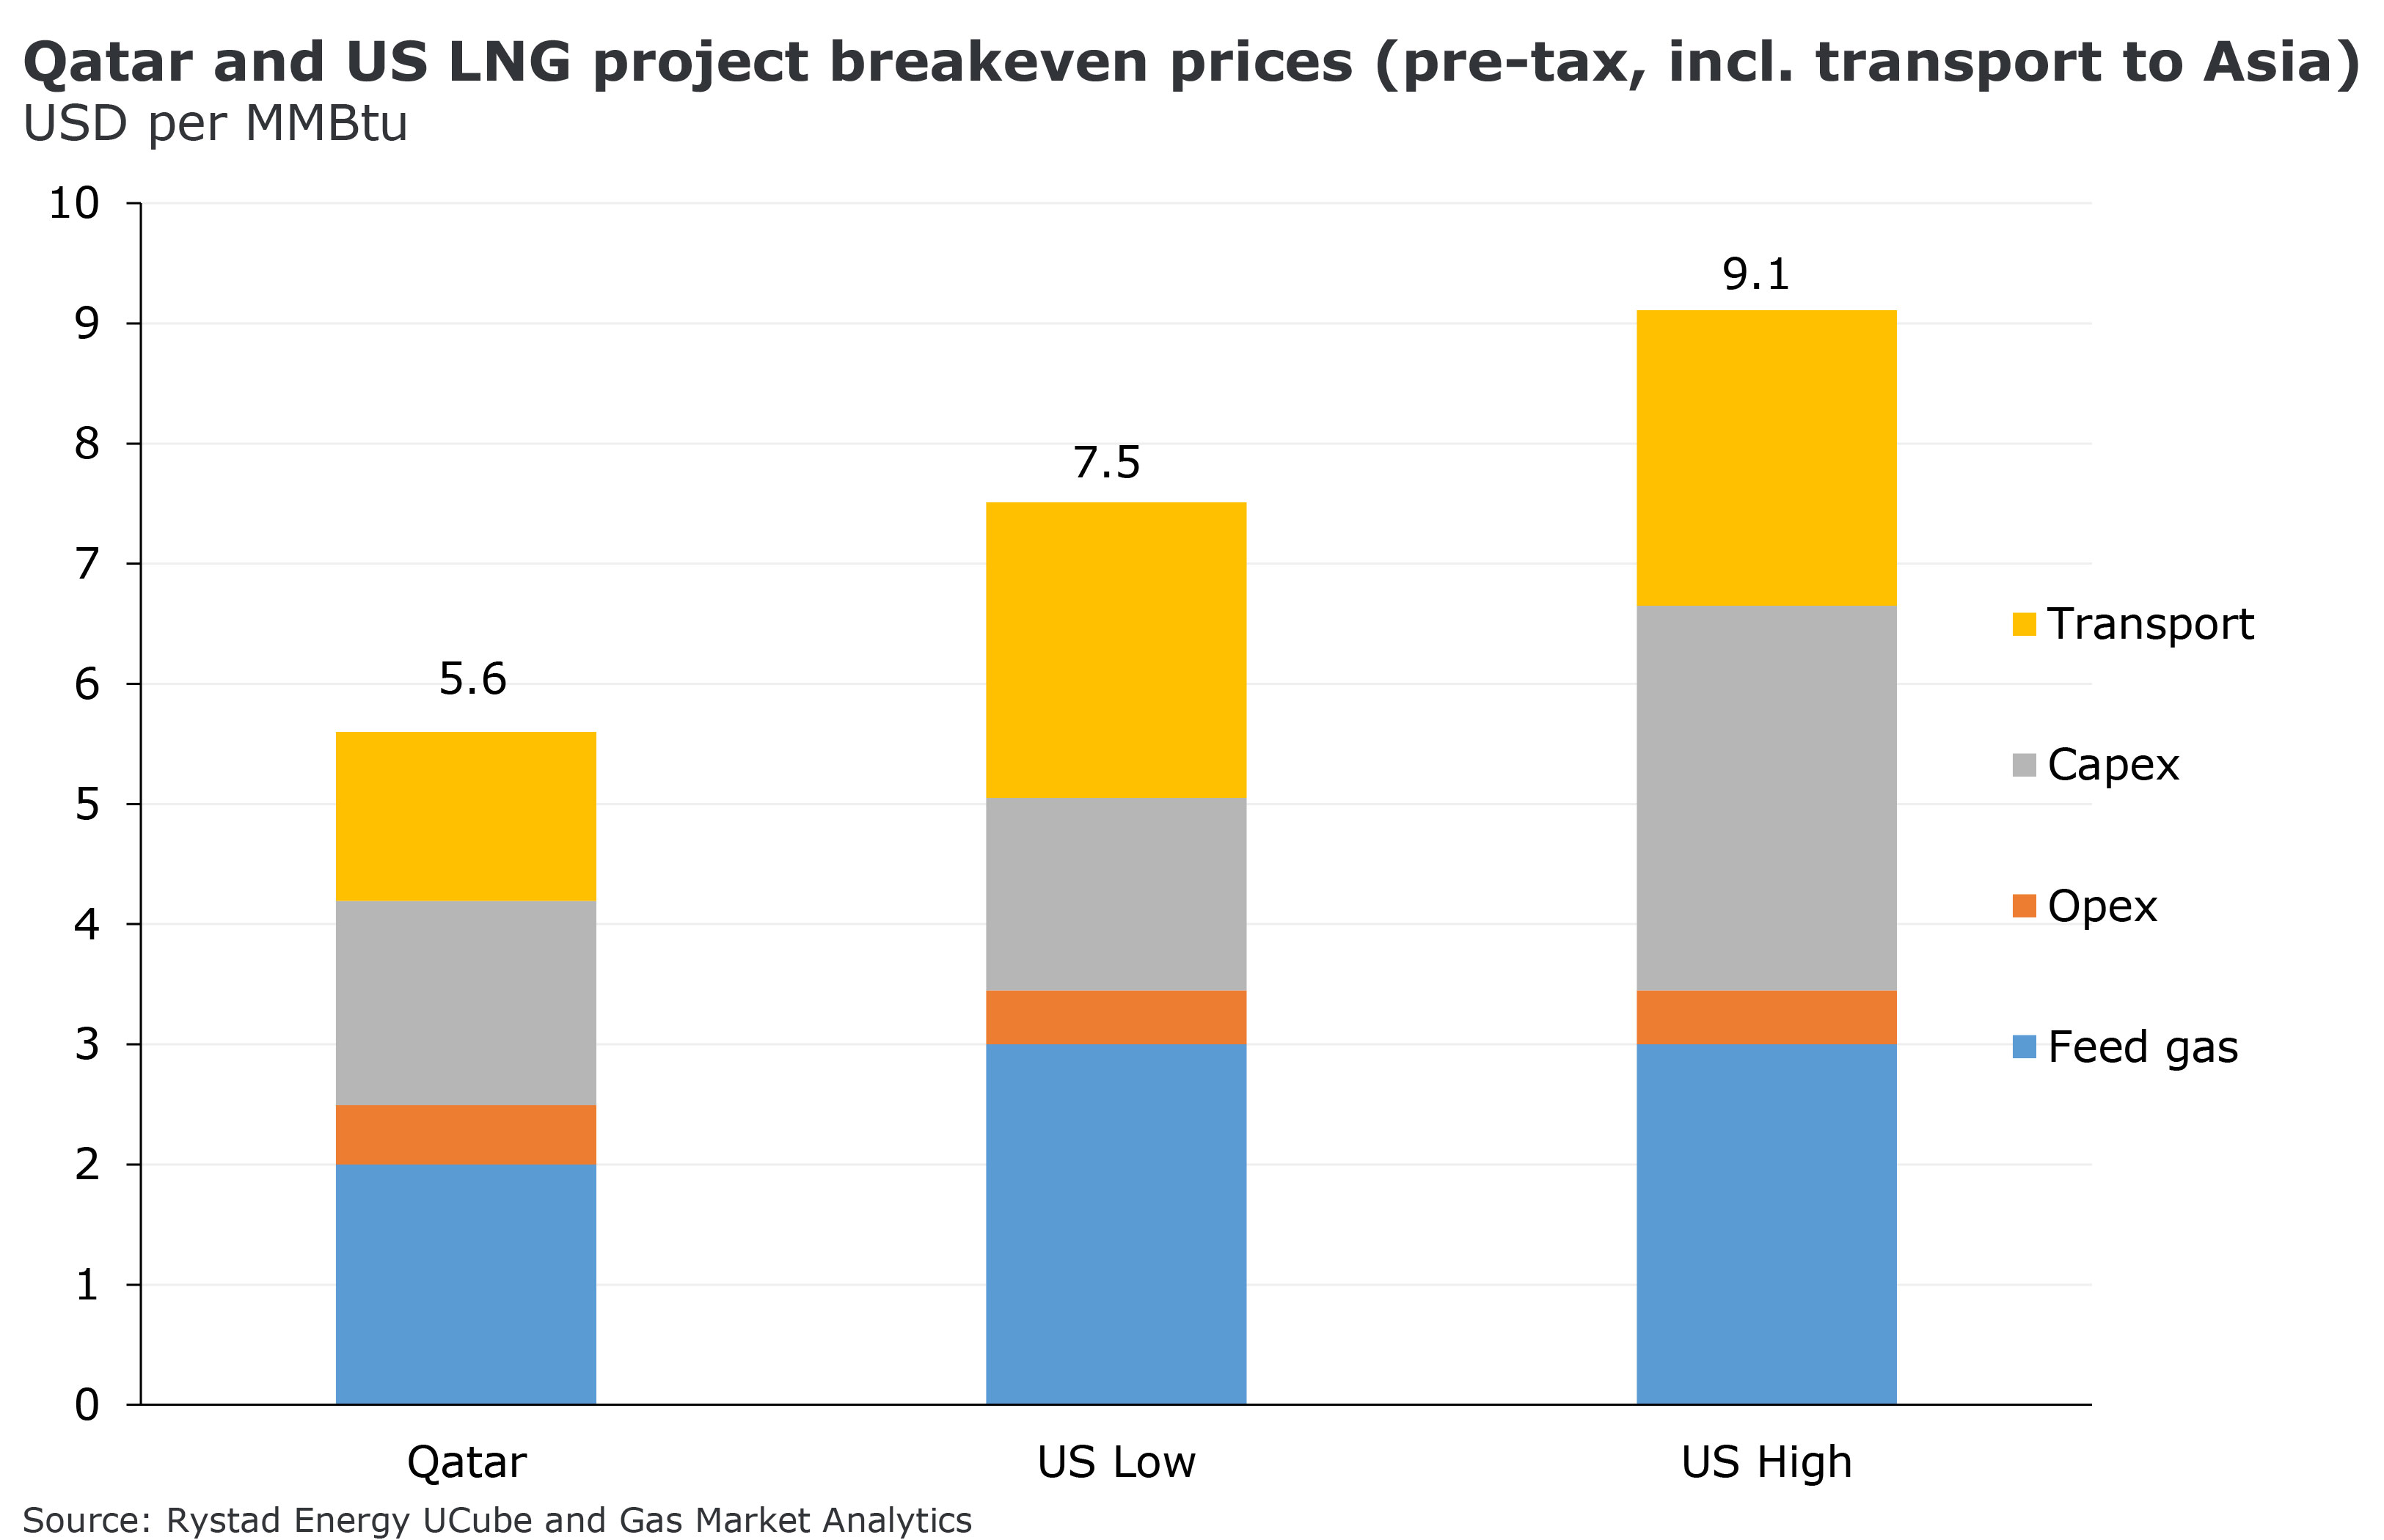 Qatar and US LNG project breakeven prices (pre-tax, incl. transport to Asia) in USD per MMBtu. Source: Rystad Energy UCube and Gas Market Analytics